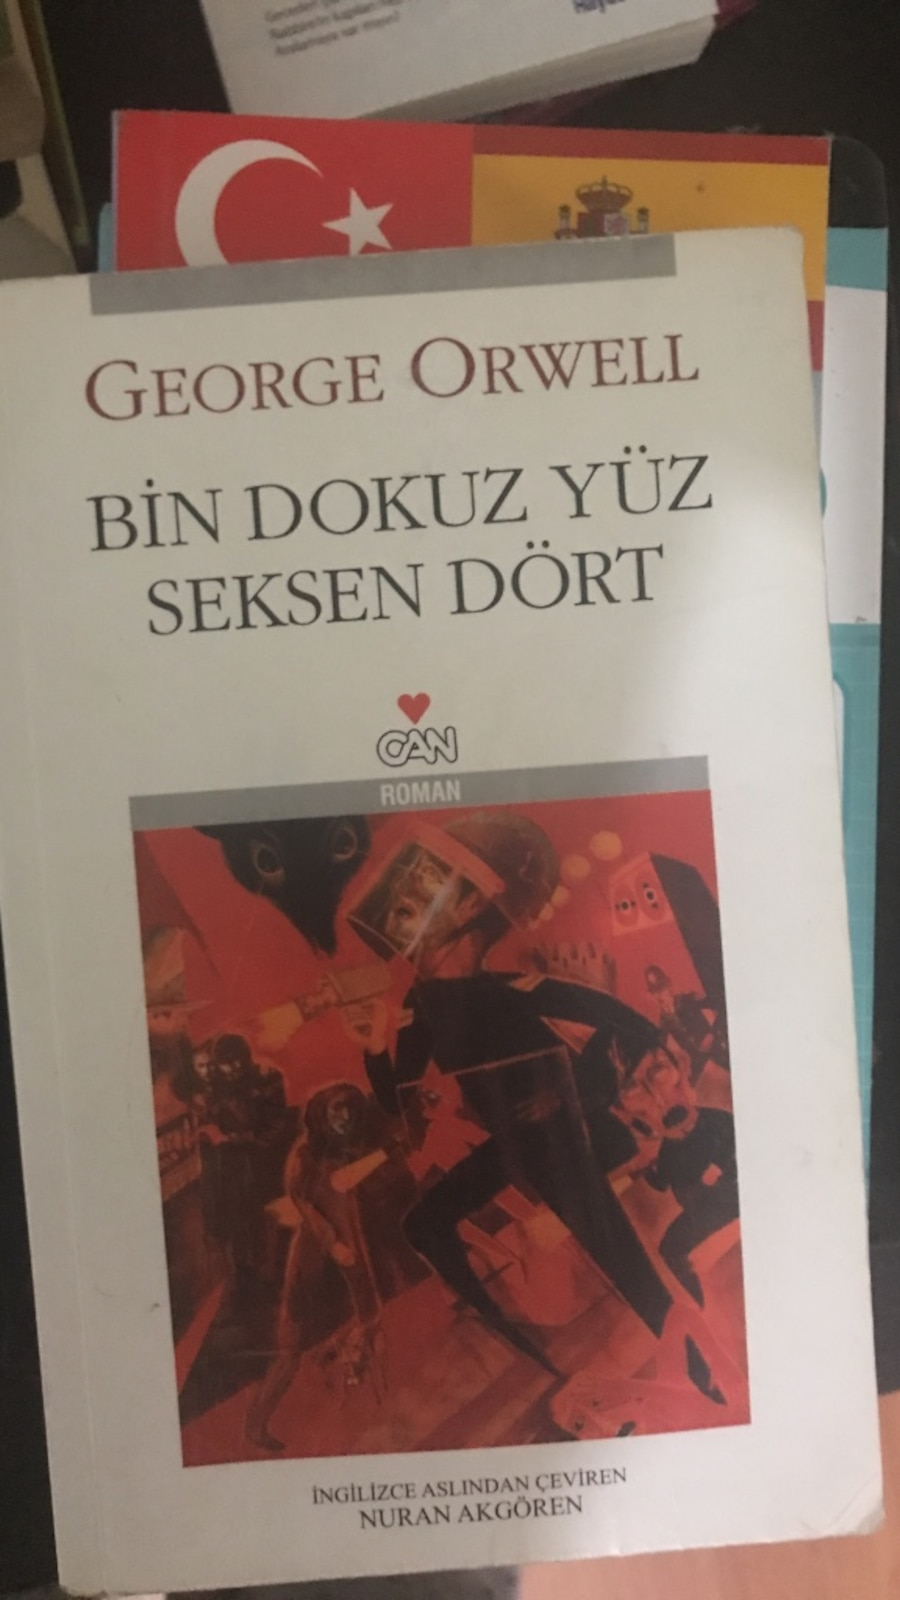 an analysis of the surveillance in 1984 by george orwell and the trial by franz kafka Find great deals on ebay for orwell 1984 shop with confidence.